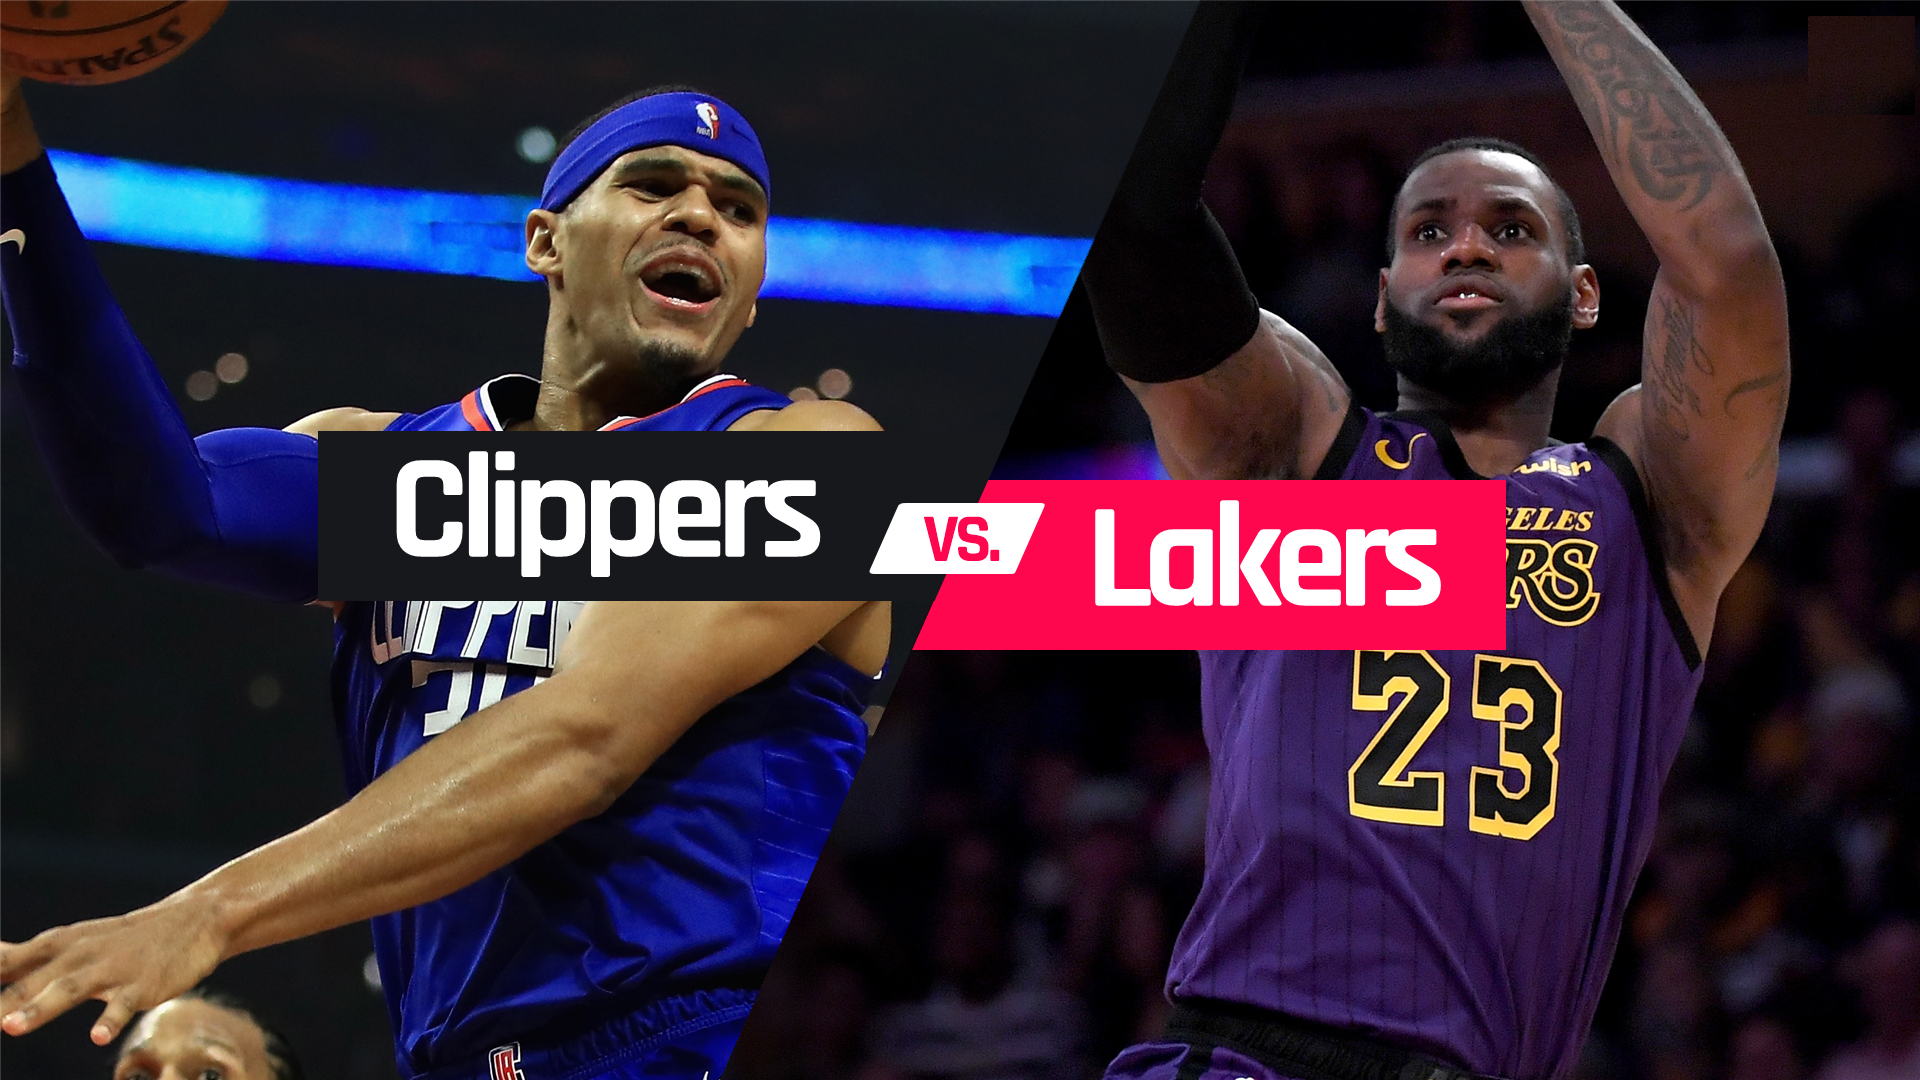 Lakers vs Clippers roster winner NBA